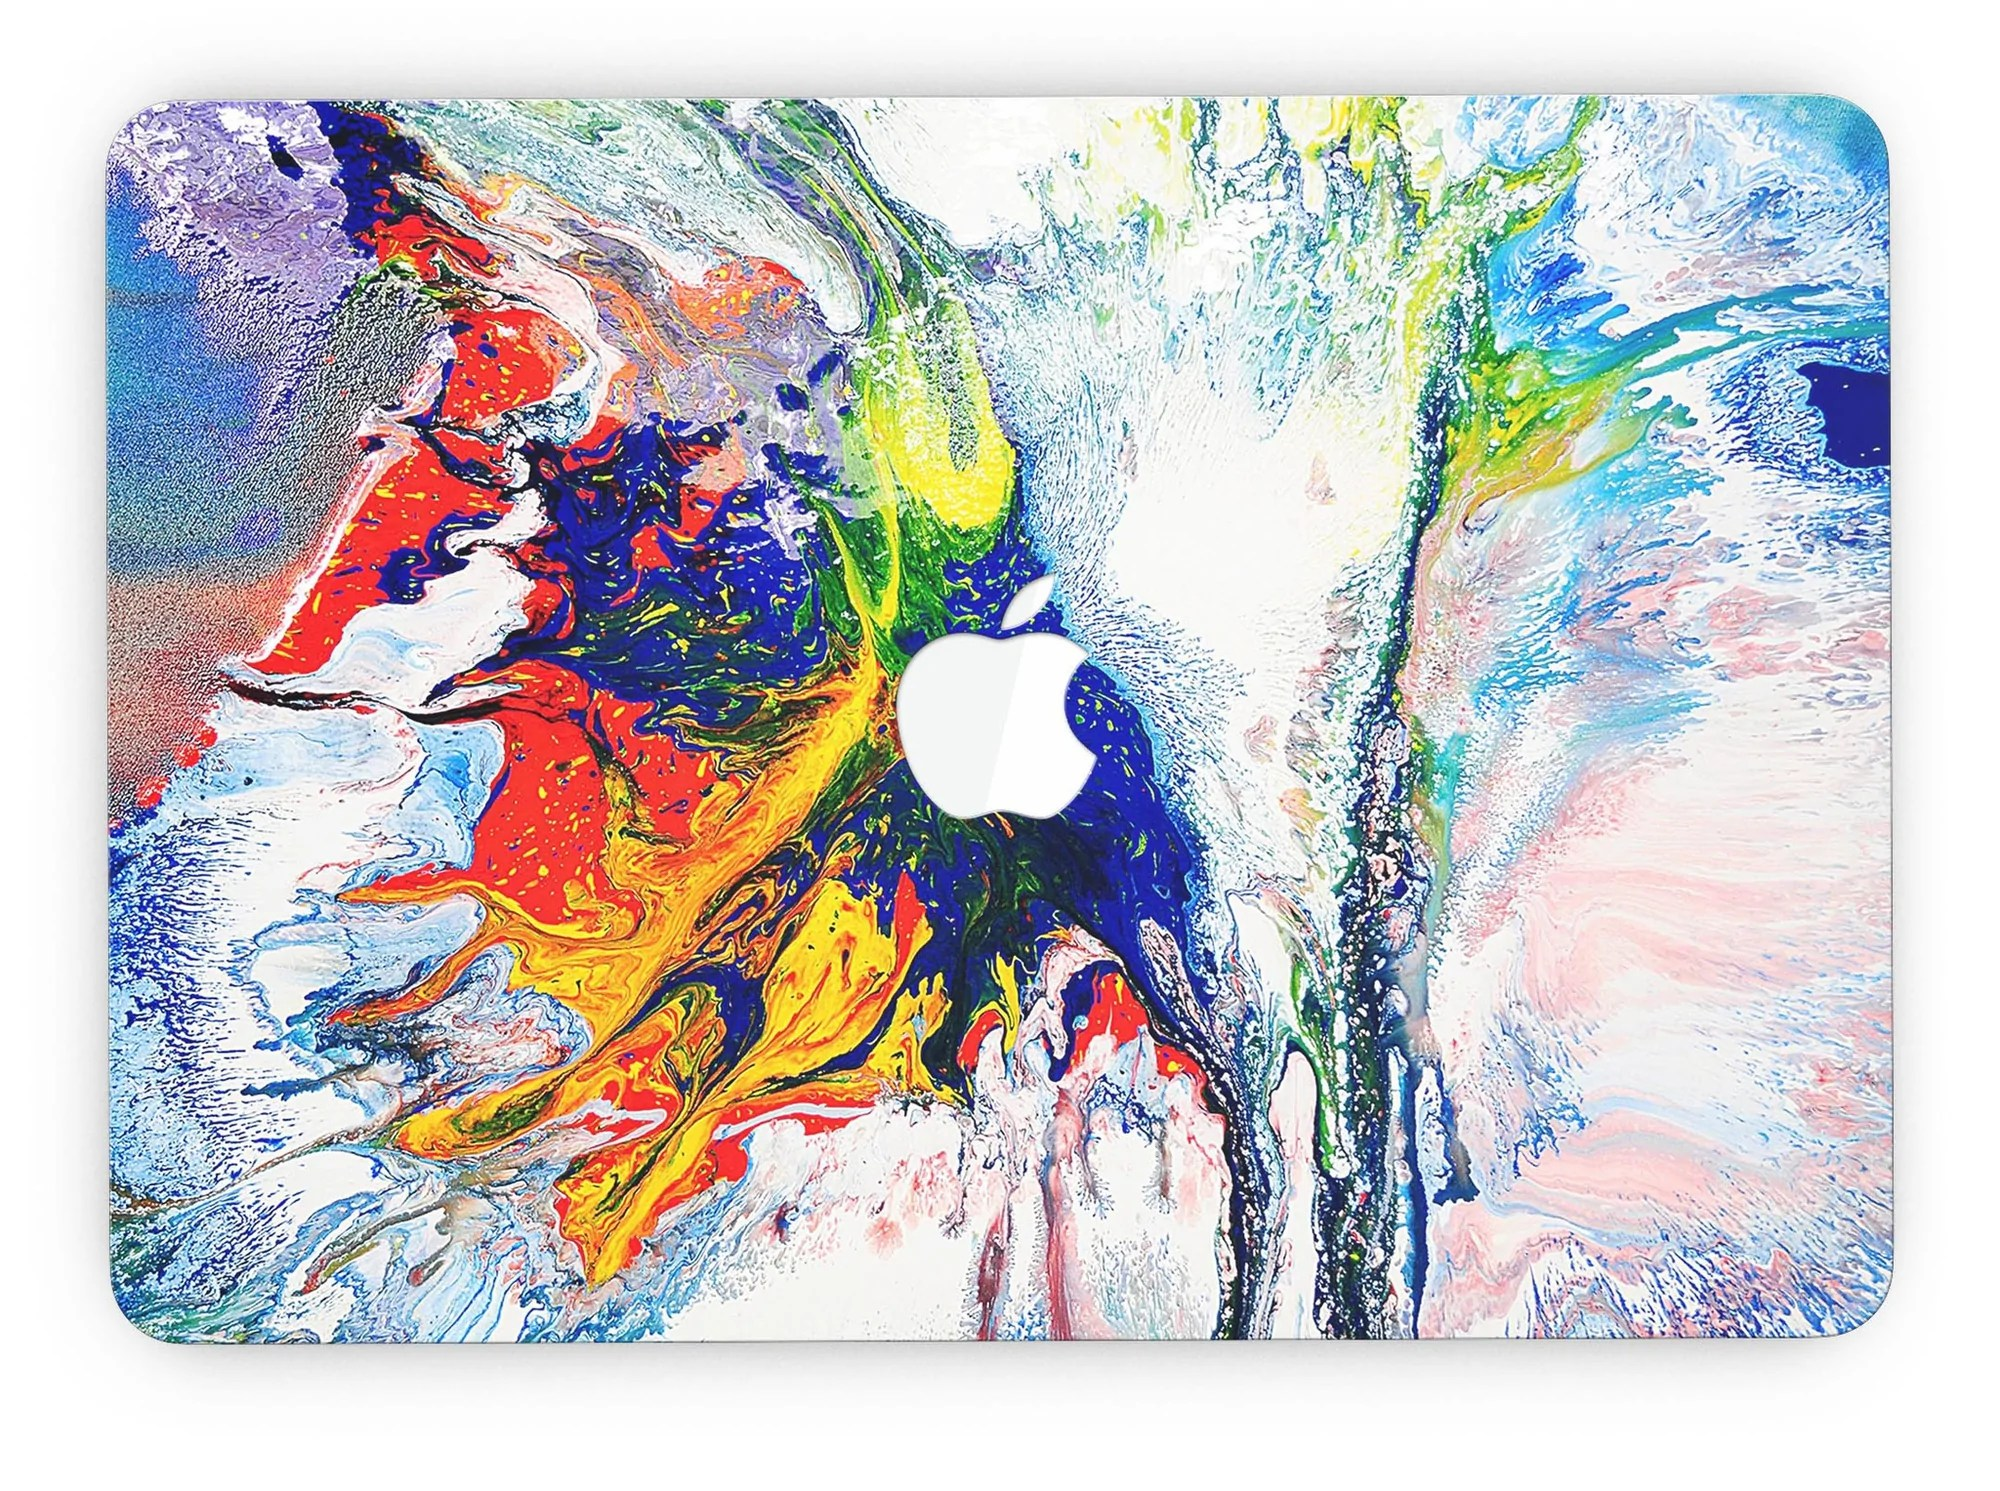 Bright Colours Painting Bright White And Primary Color Paint Explosion Macbook Pro With Retina Display Full Coverage Skin Kit